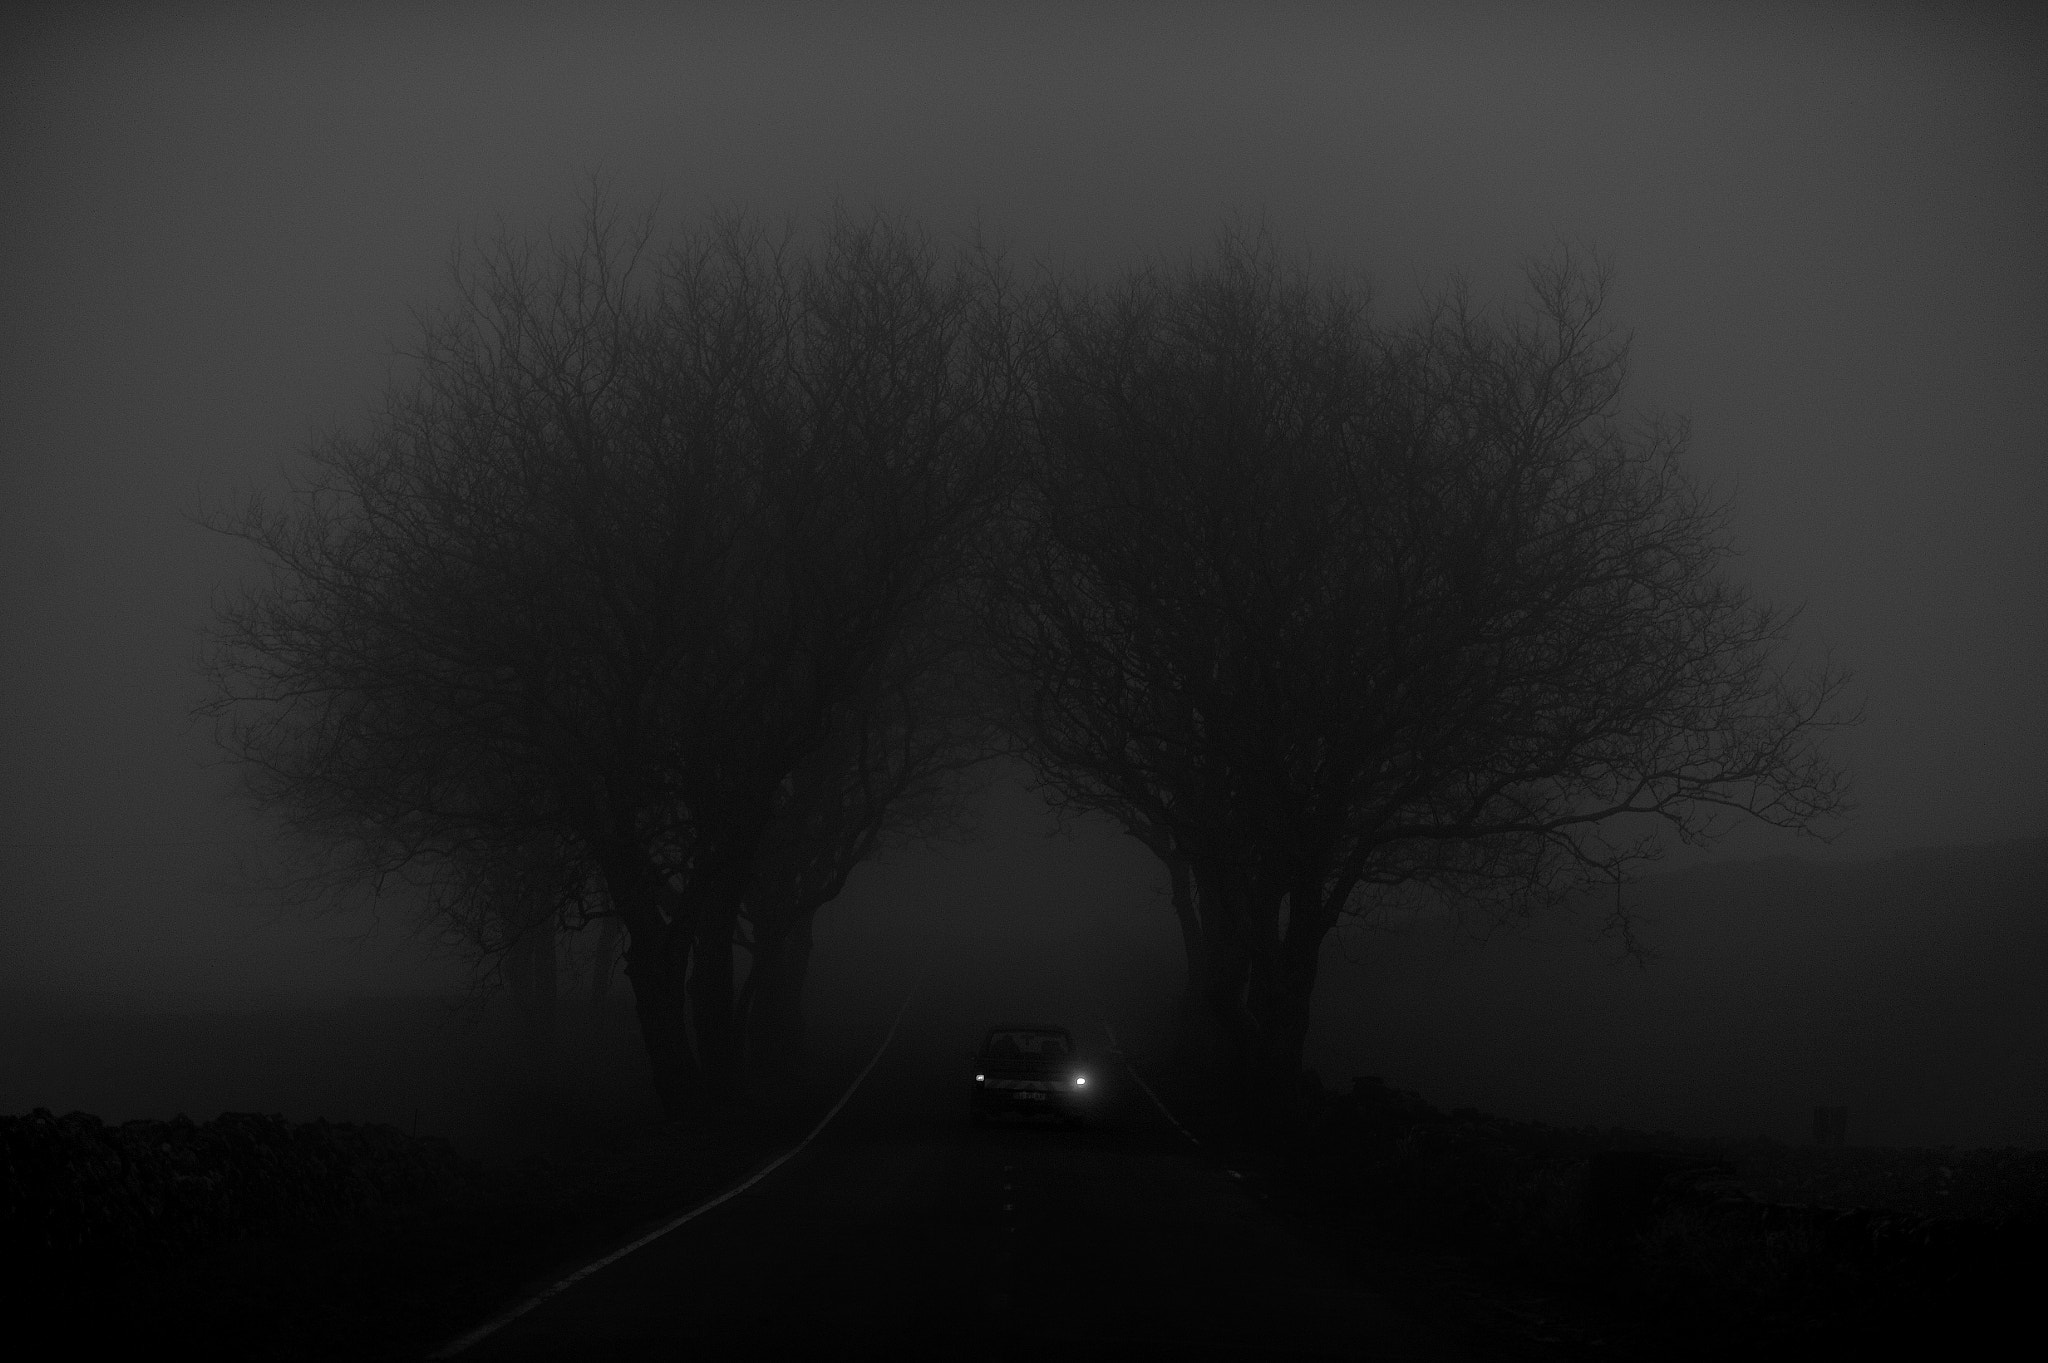 Photograph Fog by Rui Caria on 500px